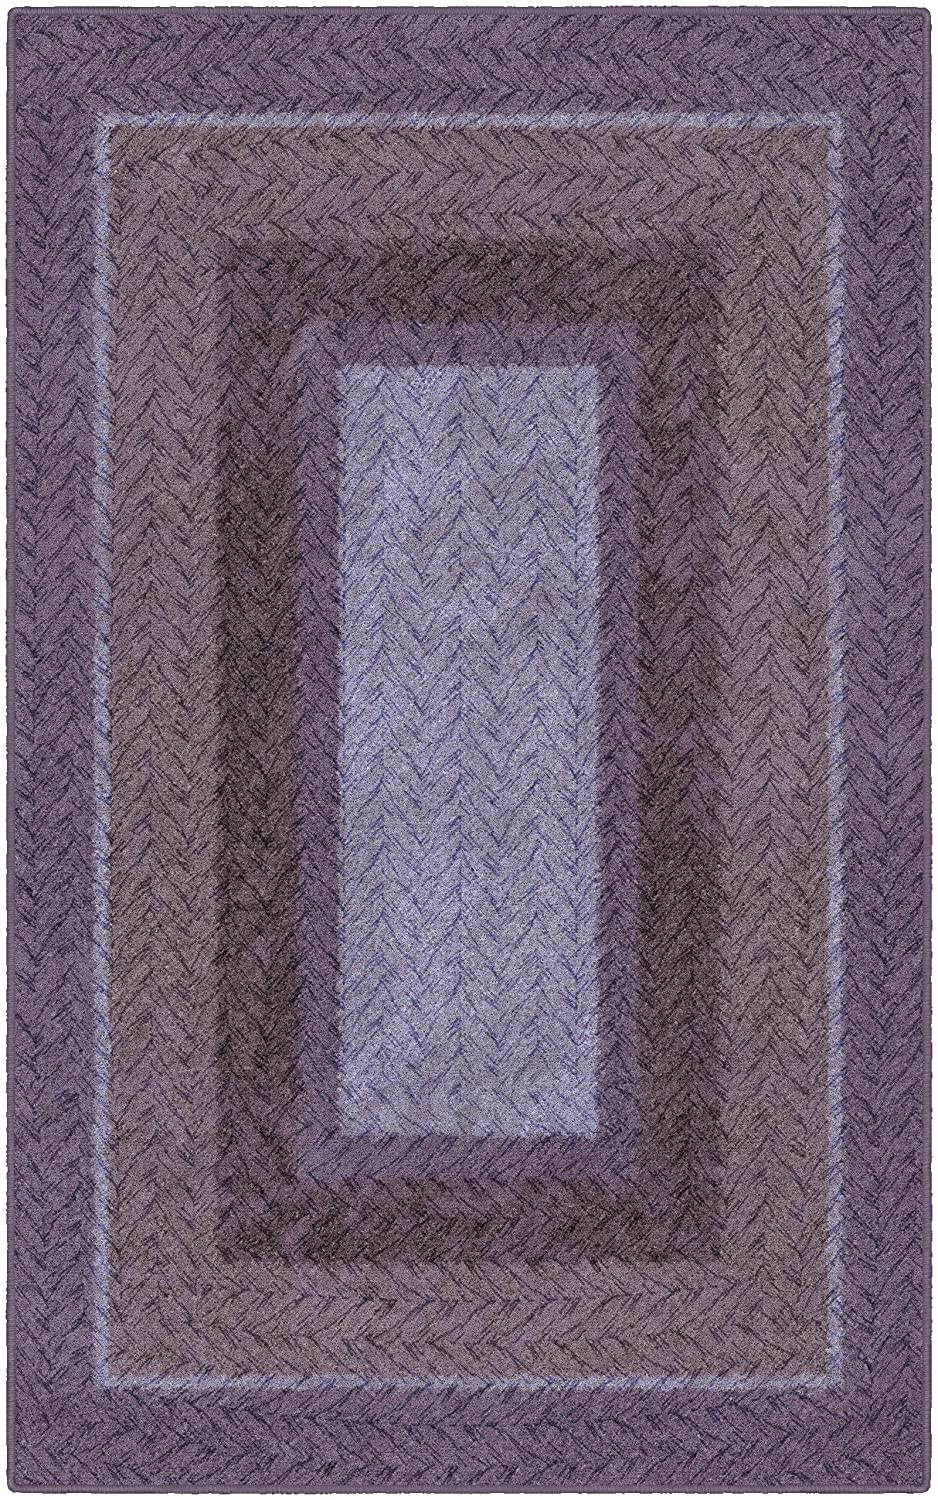 Brumlow Mills EW10154-40x60 Purple Braided Printed Area Rug, 3